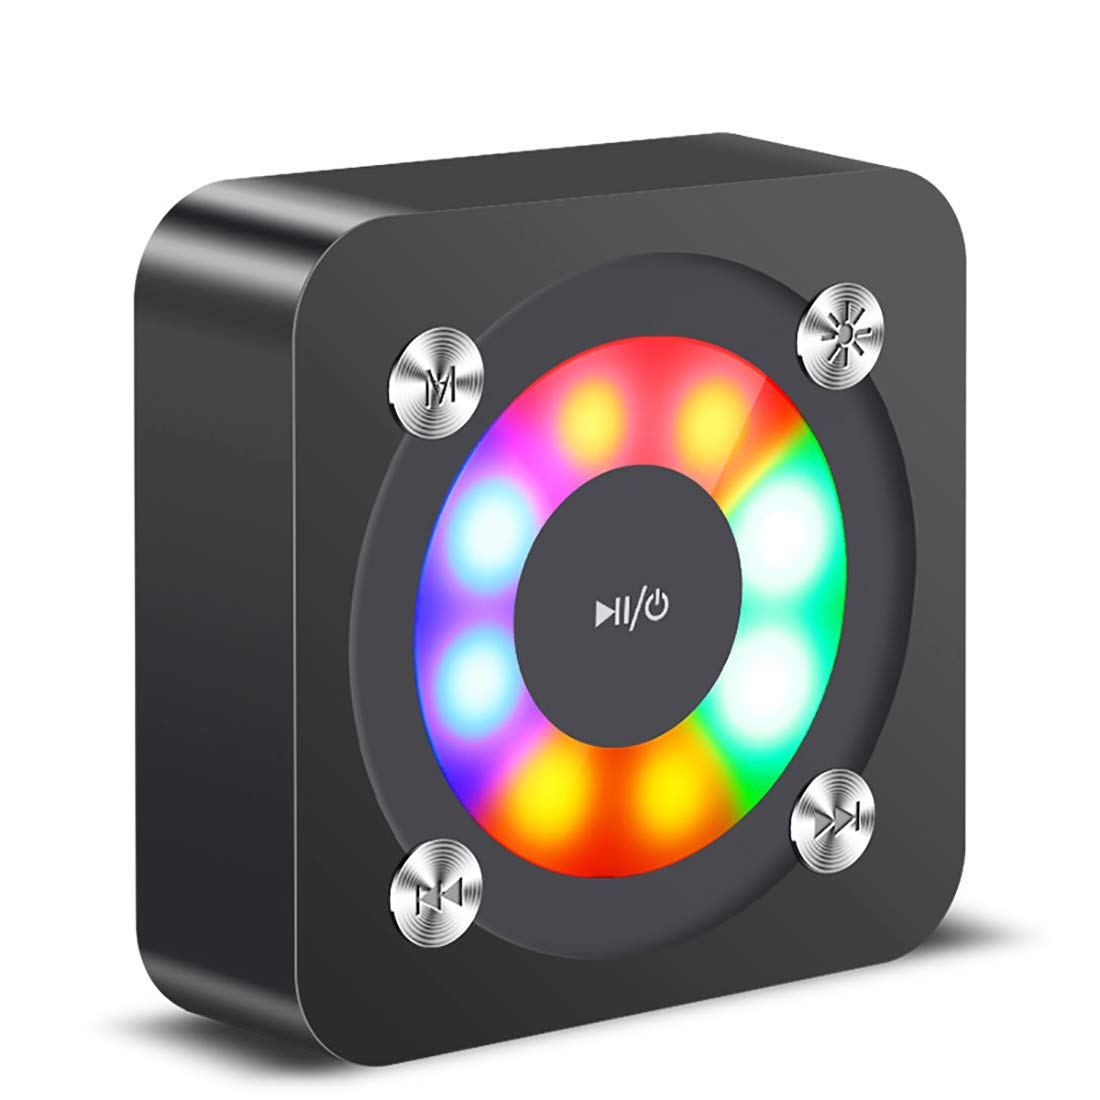 Xmate Theatre 5W Compact Bluetooth Speaker, HD Sound, Bluetooth 5.0 Wireless Speaker with 4 Hours Playback Time, Built-in Mic, Aux & Micro SD Card Support, 850mAh Rechargeable Battery - (Black)